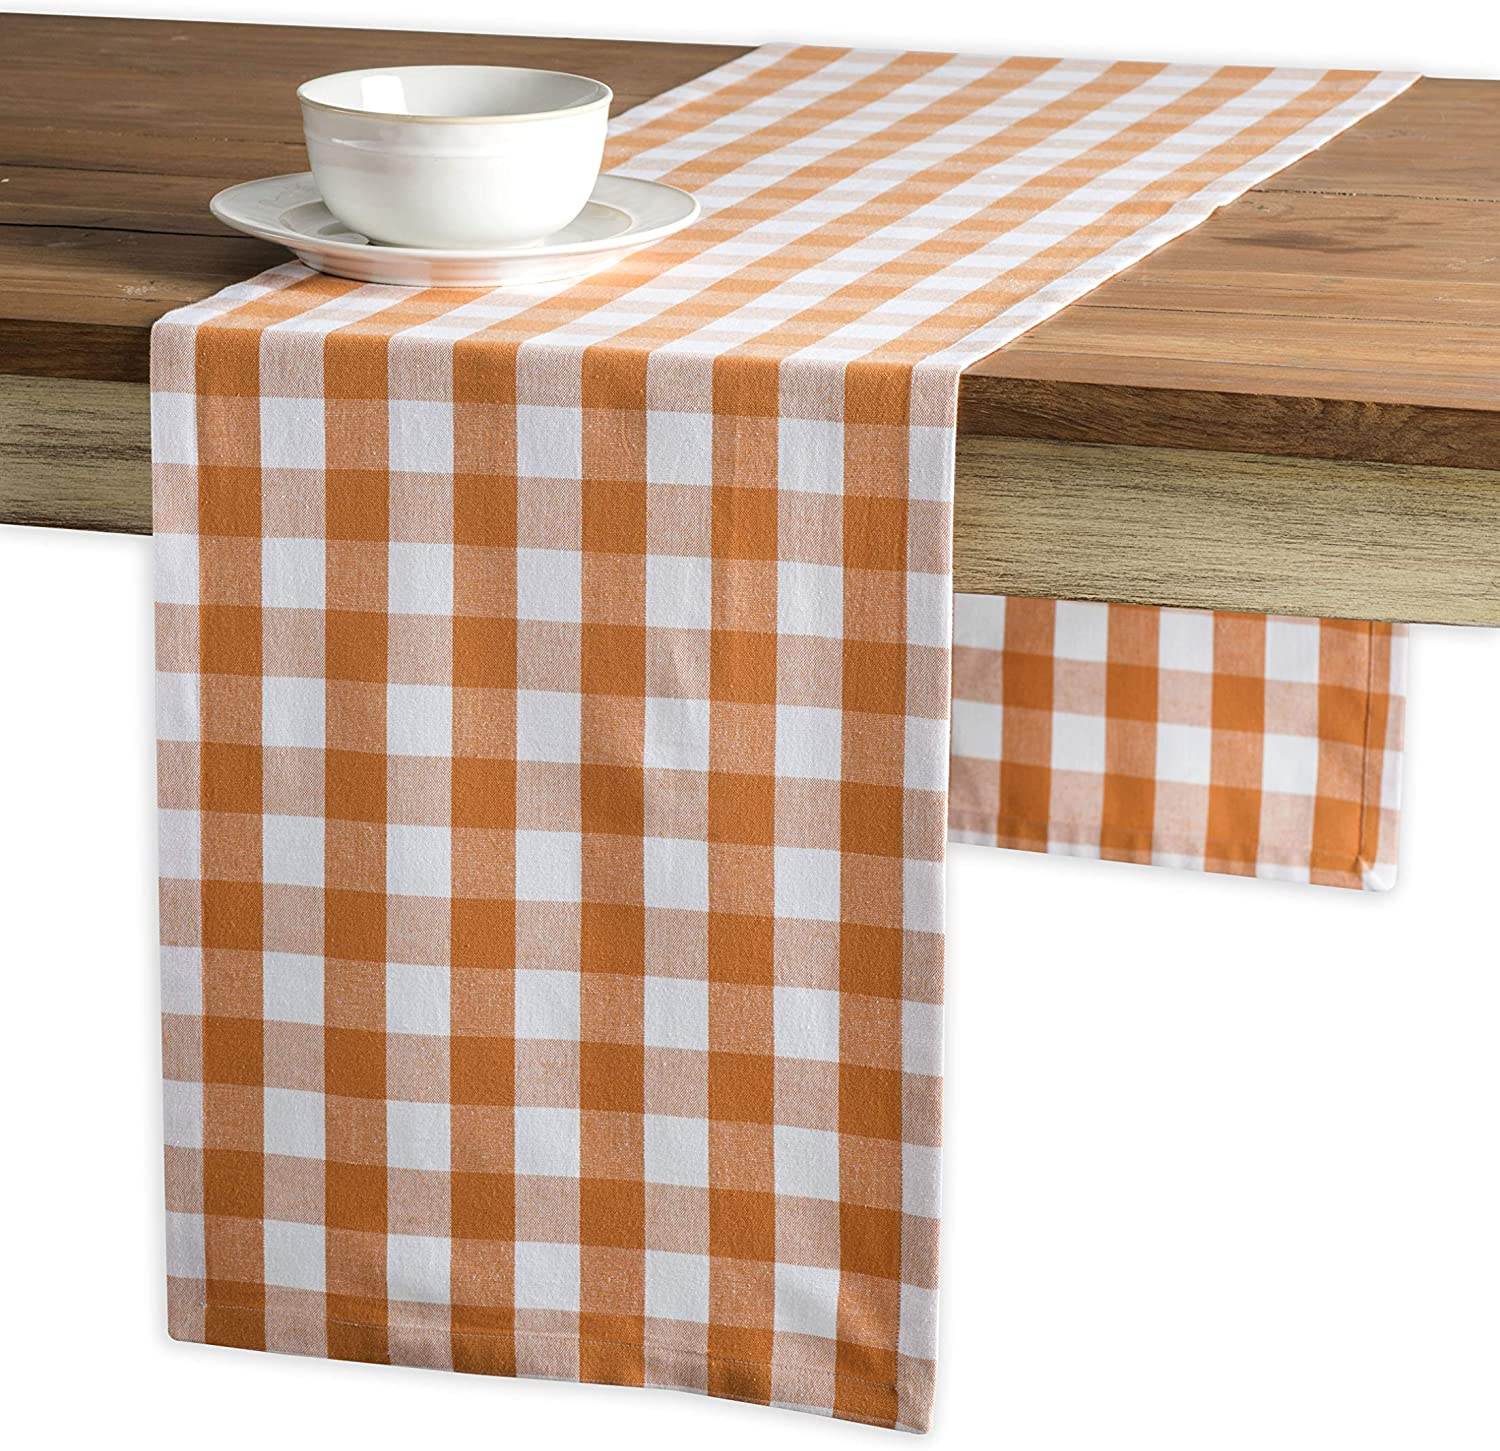 Maison d' Hermine Rosmalen - Apricot Runne Mail order Cotton Table Tan 100% Safety and trust